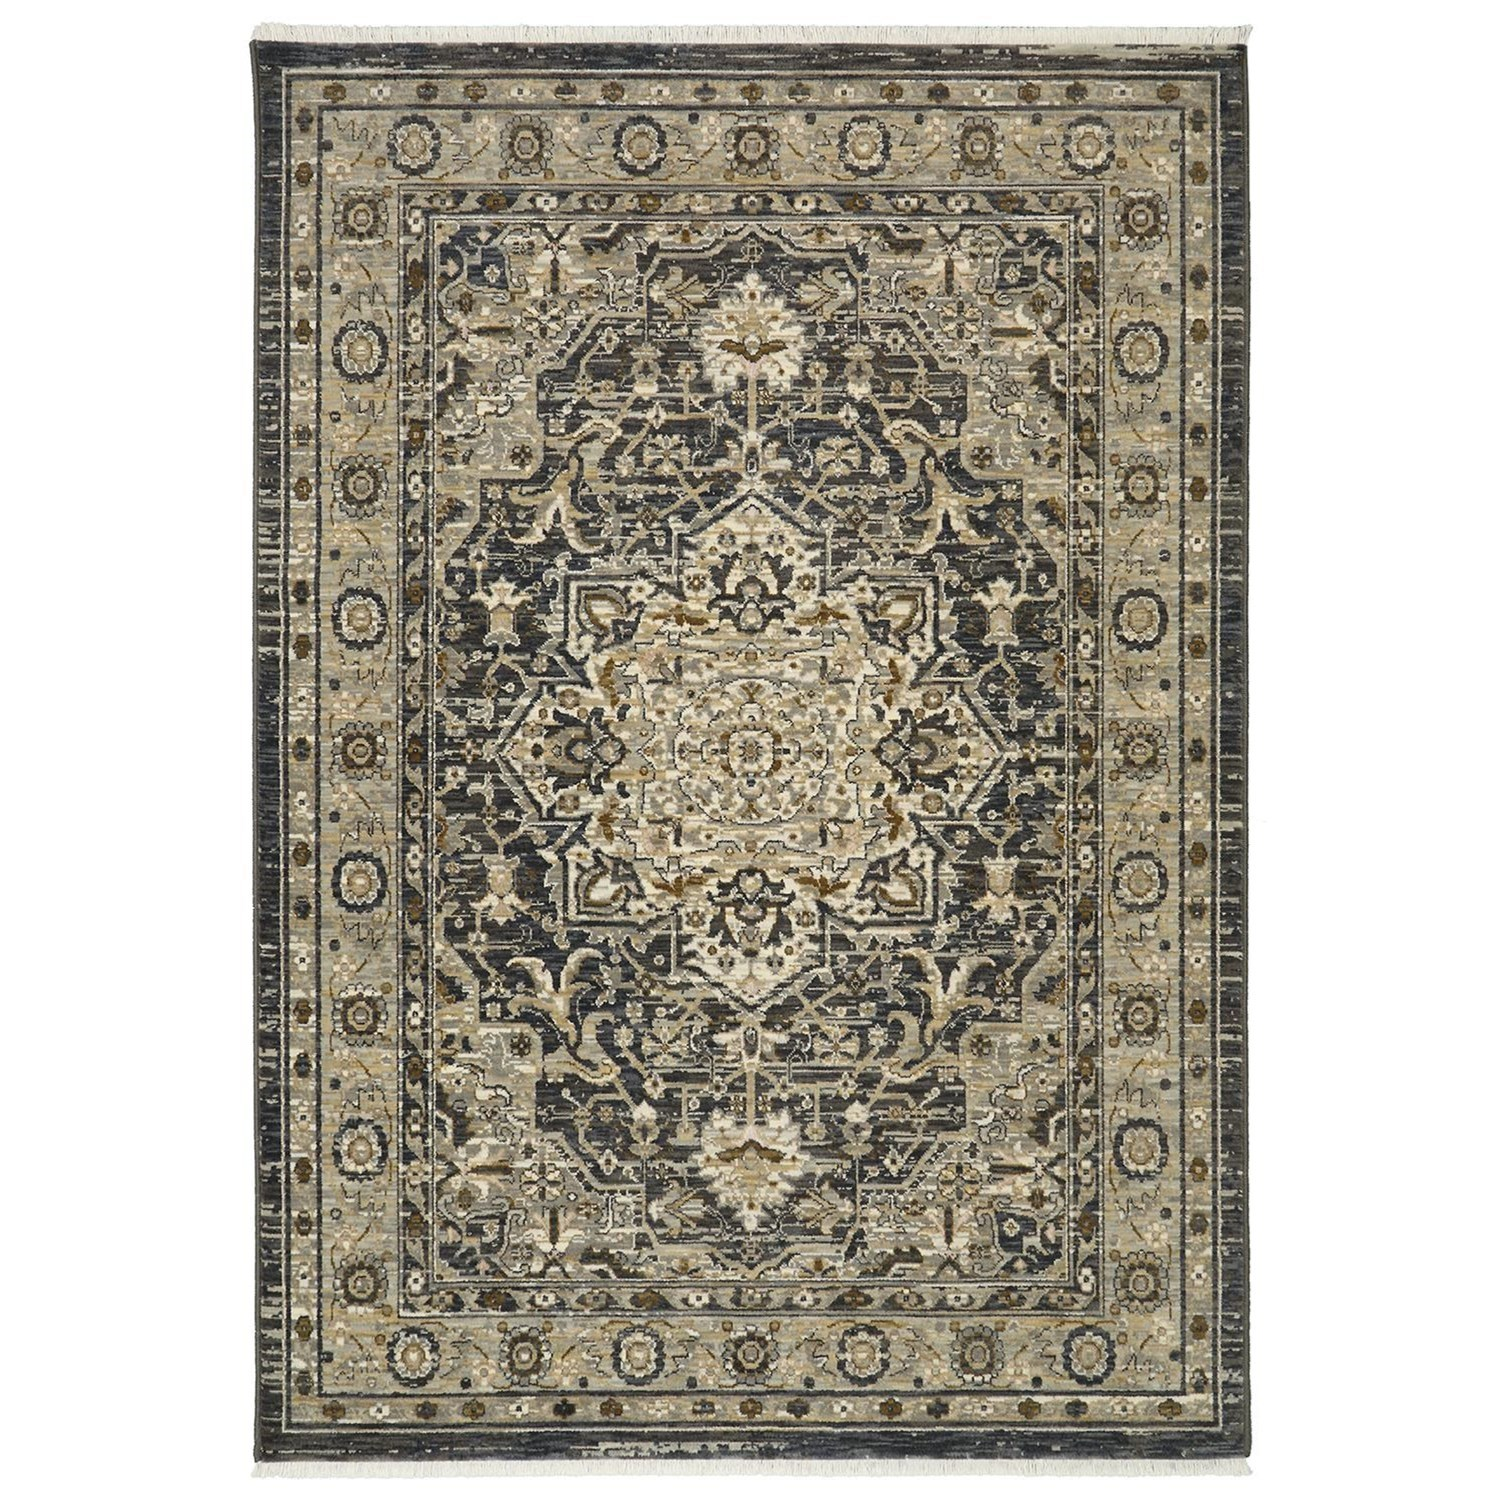 Titanium 2'1x7'10 Regency Charcoal Rug Runner by Karastan Rugs at Darvin Furniture